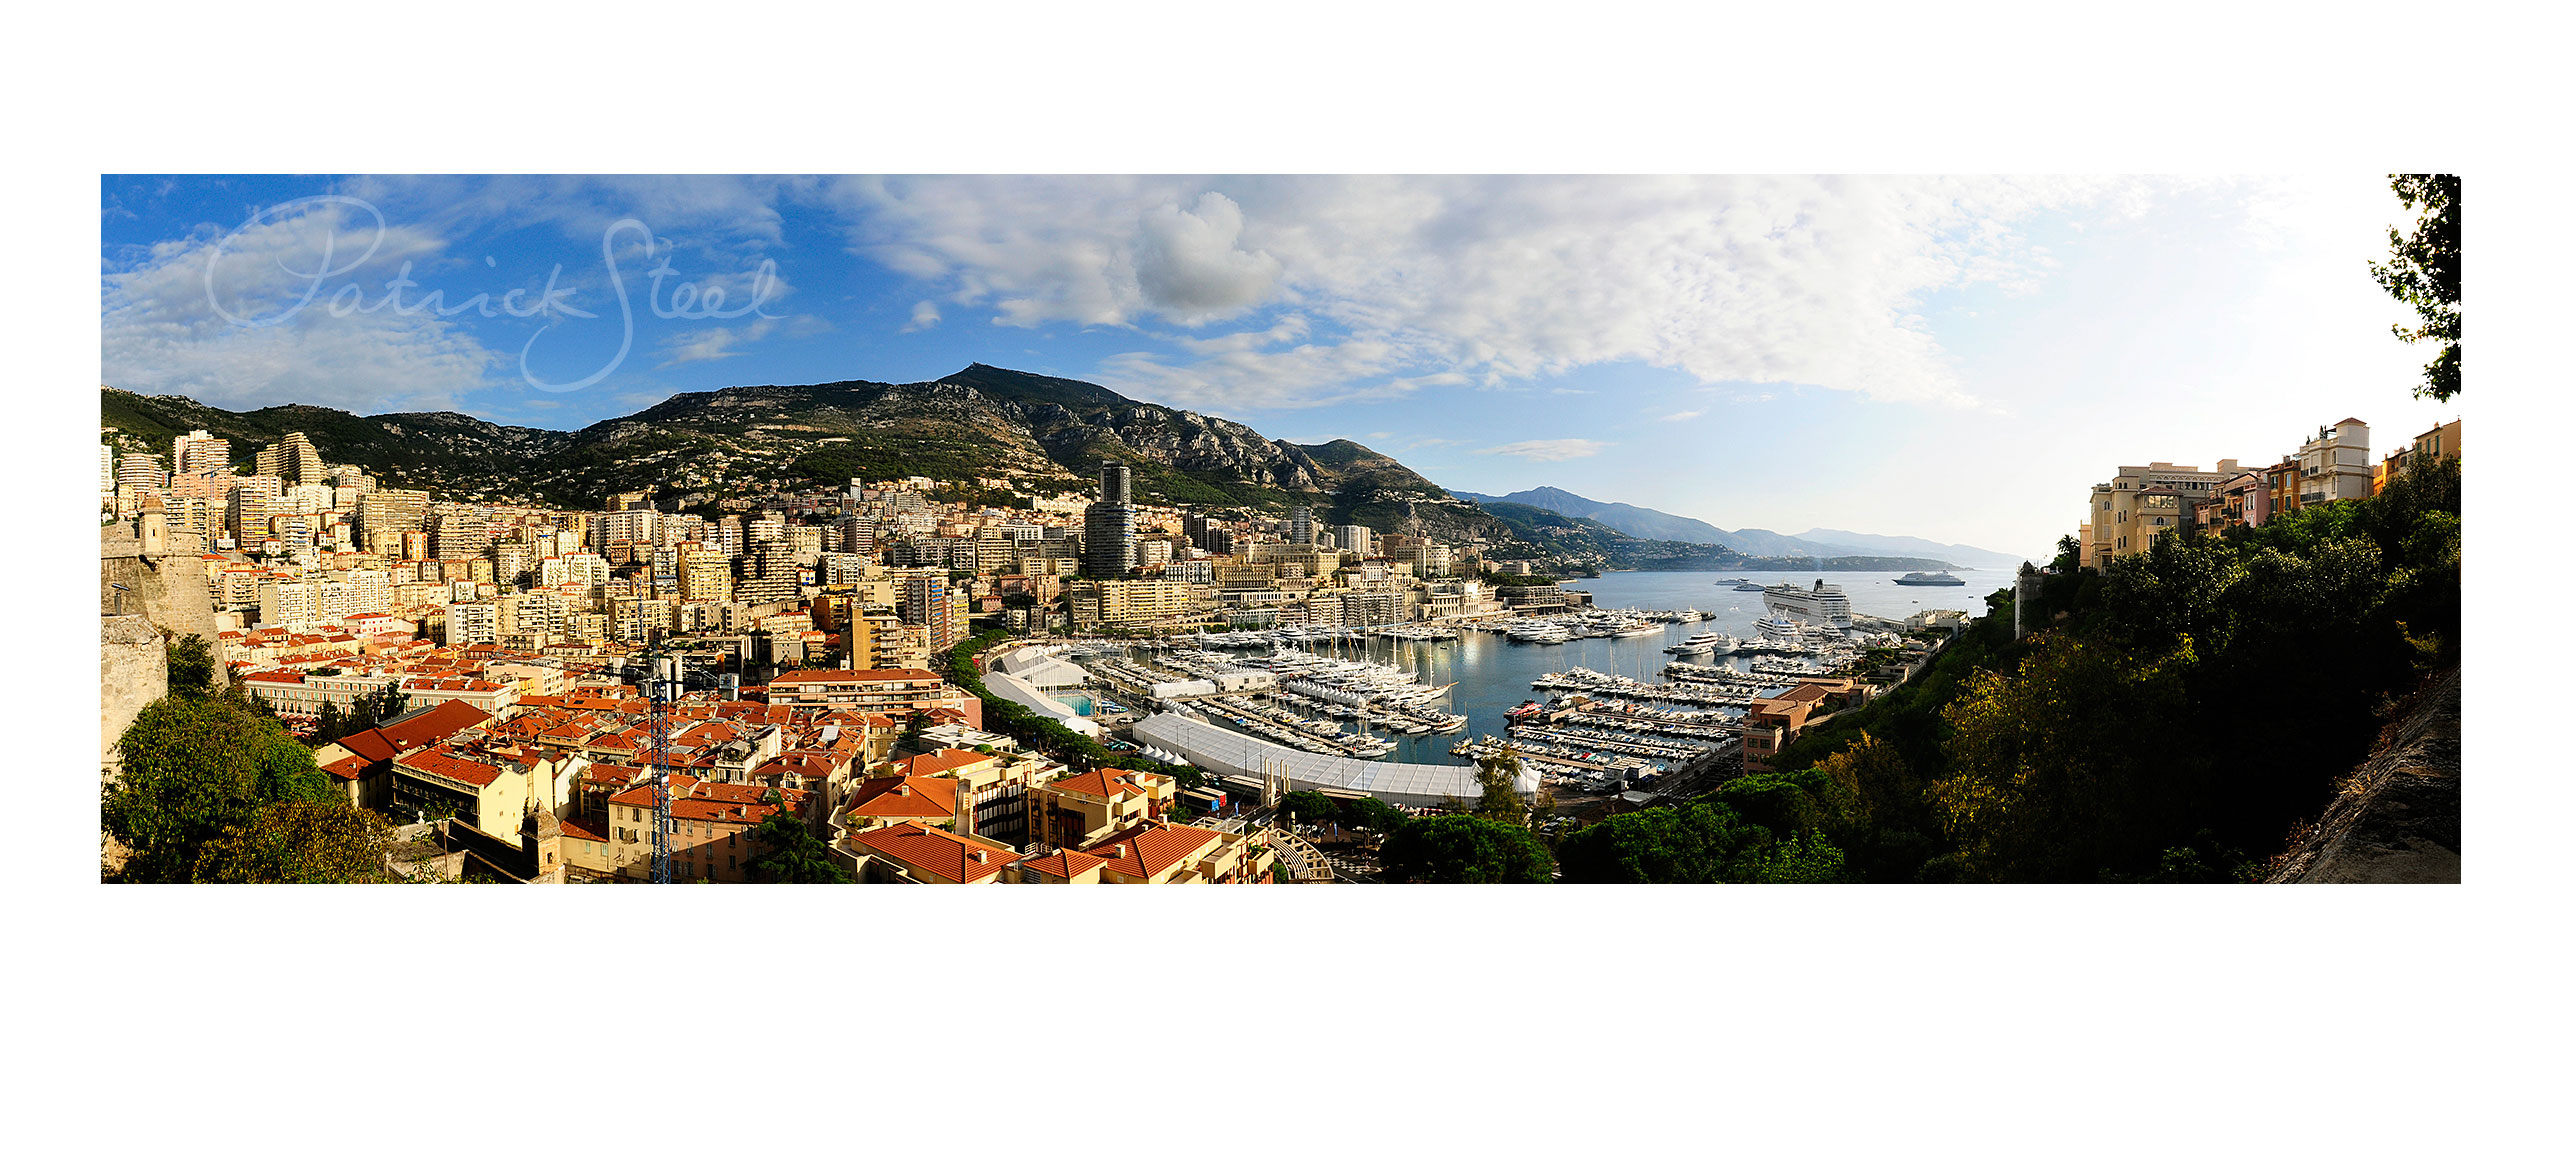 photograph of port hercule monaco by landscape photographer patrick steel